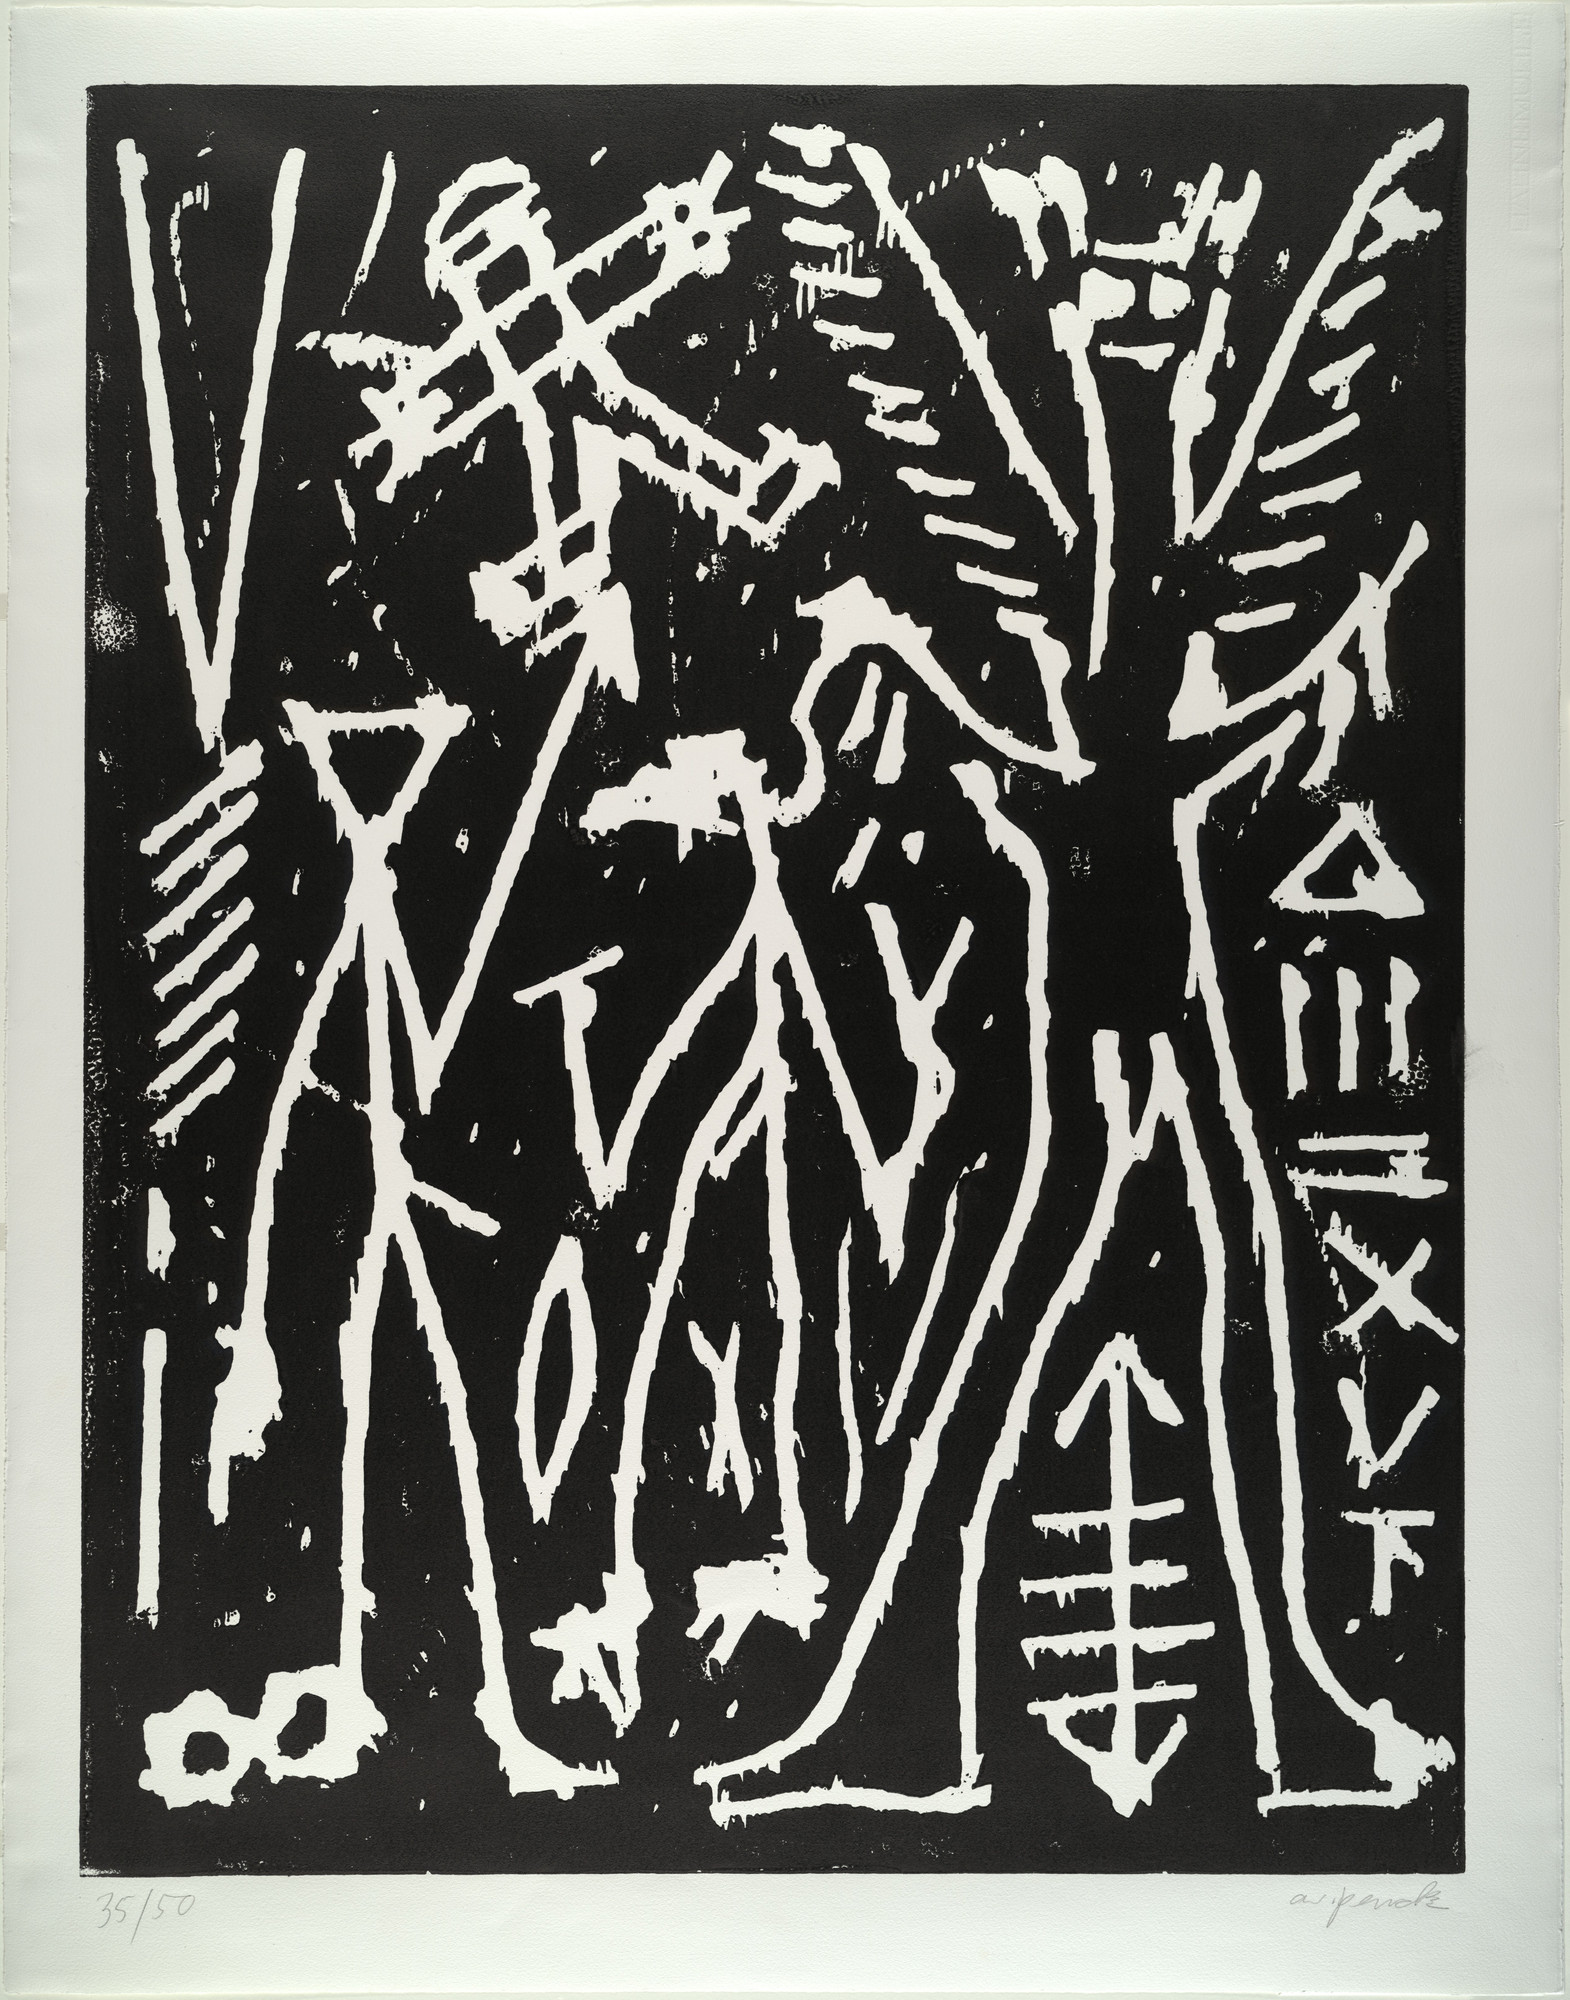 A.R. Penck (Ralf Winkler). Nachtvision (Nightvision) from Erste Konzentration I (First Concentration I). (1982)